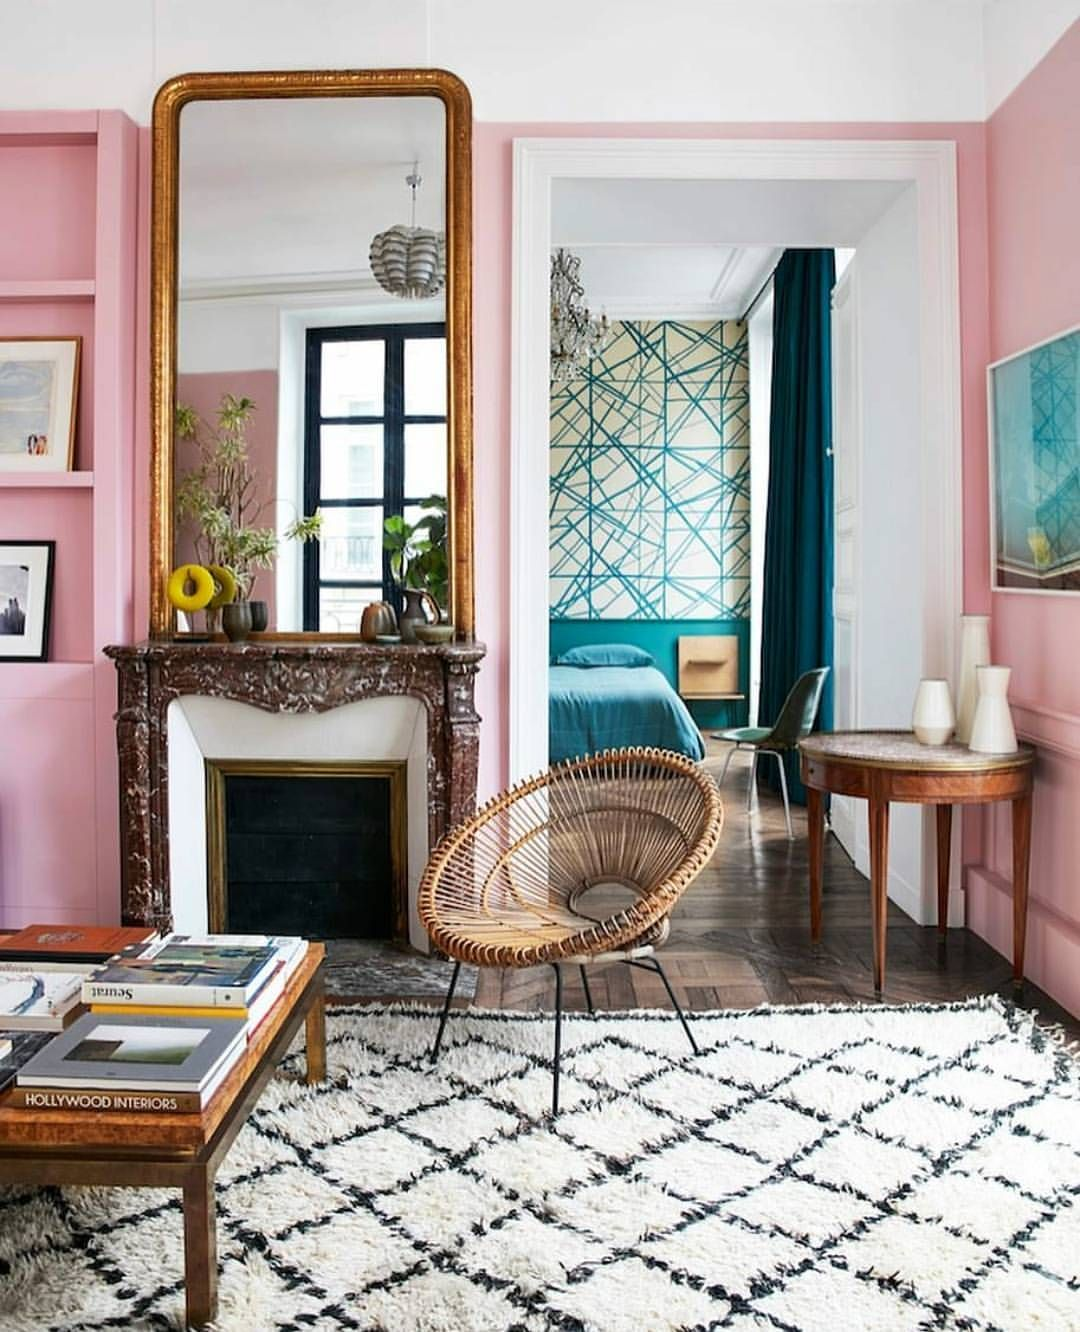 This 1718 parisian apartment has been beautifully modernized with pink walls geometric patterns and flea market finds new meets old in a very fun way